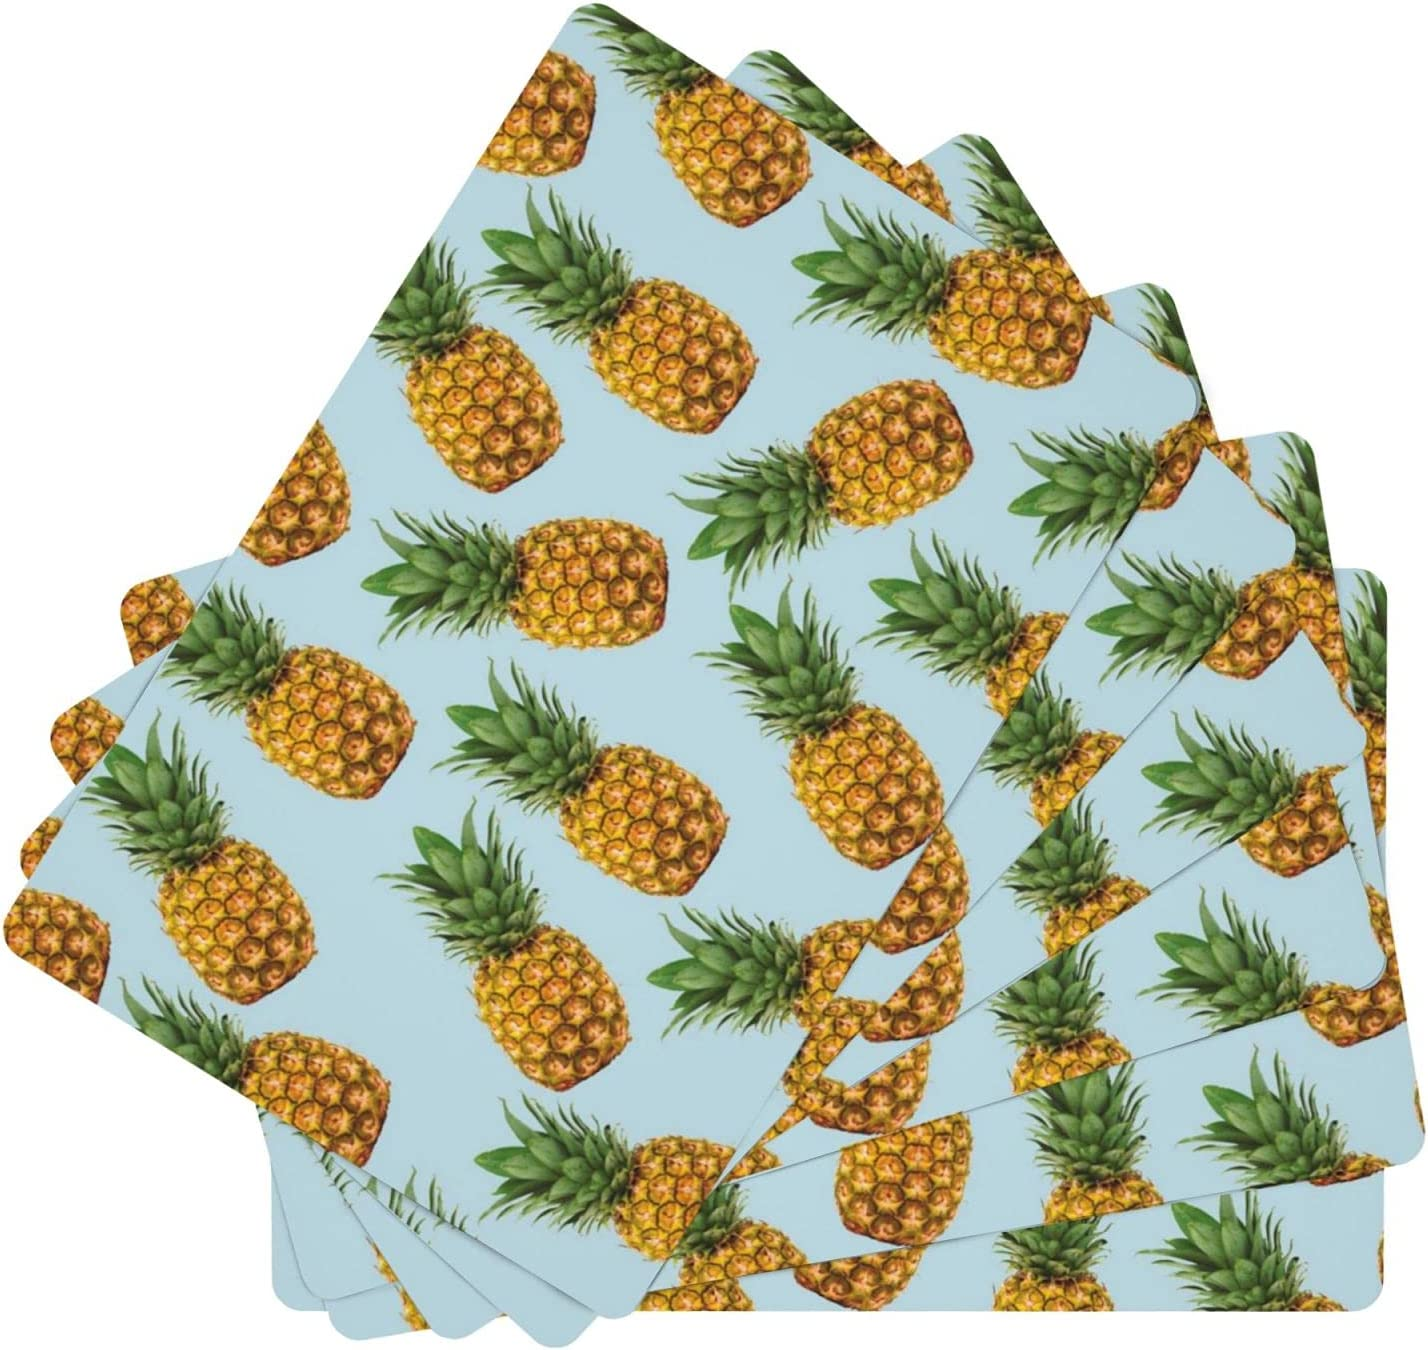 Pineapple Leather New Free Shipping Place Mats for Dining Set of 6 67% OFF of fixed price Washable Table